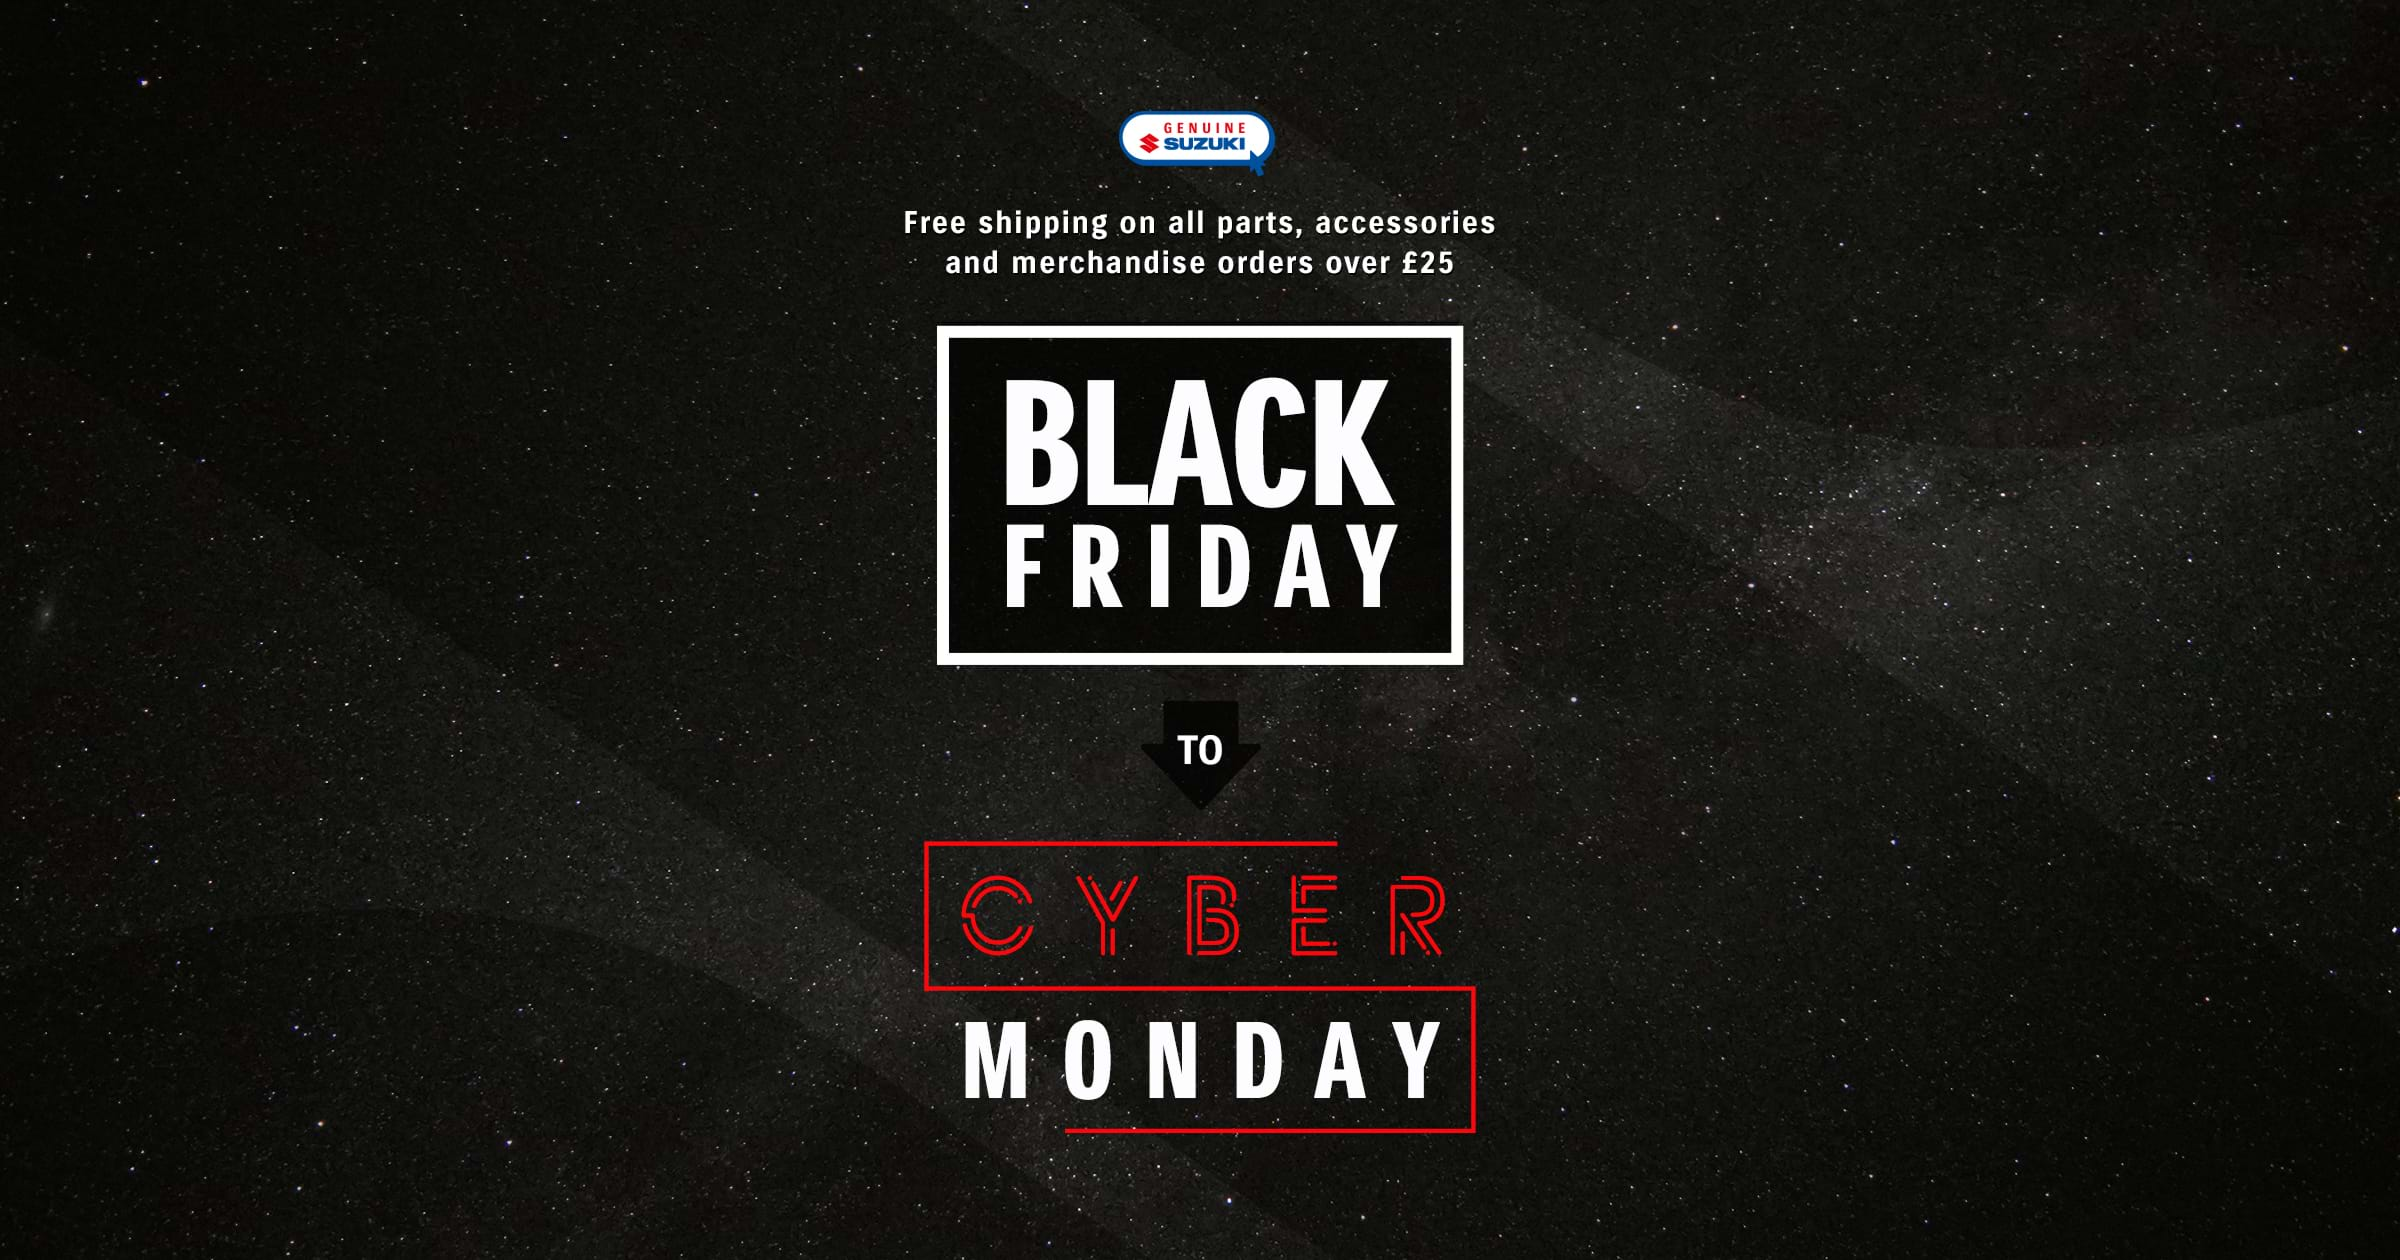 Free shipping from Black Friday to Cyber Monday on Suzuki merchandise